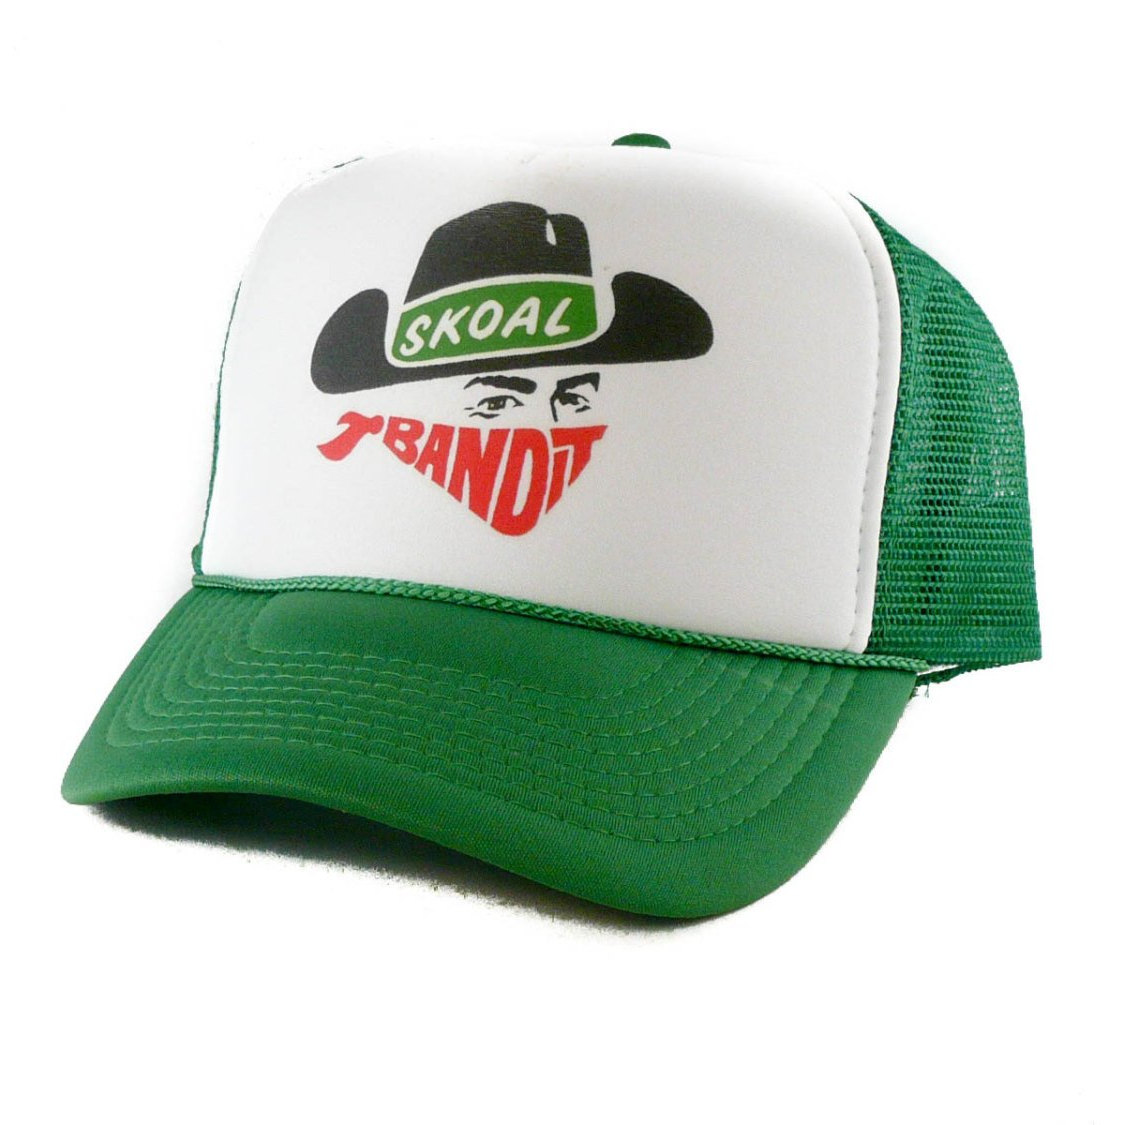 "Thanks for the kind words! ★★★★★ ""Love it, my grandpa owned the skoal team back in the 80s and 90s. I have some vintage hats I don't want to wear out and this one is perfect."" Ryan  #etsy #green #white #birthday #christmas #truckerhat #snapbackha"